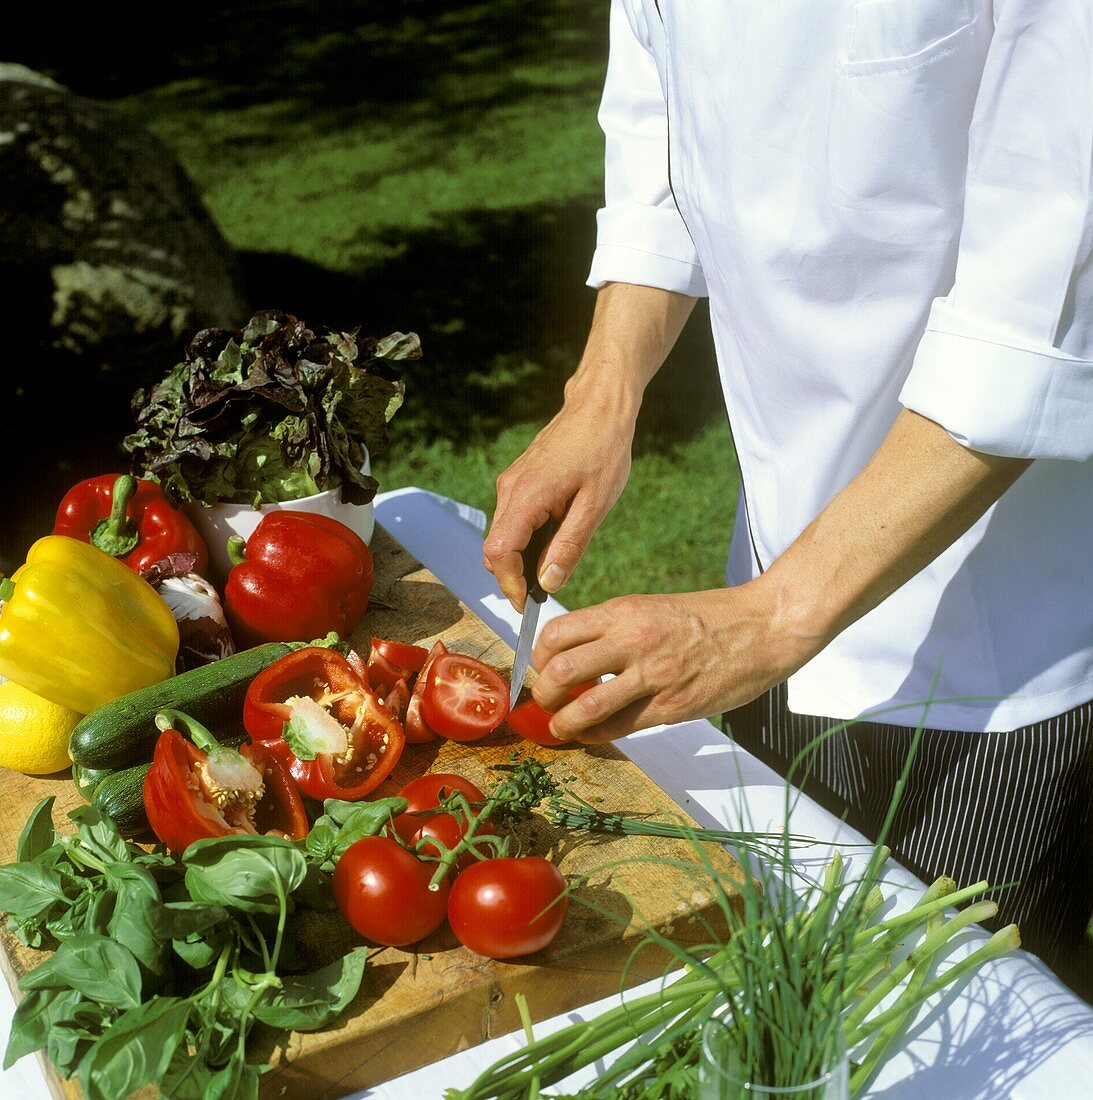 Chef cutting fresh vegetables and herbs (outdoor shot)